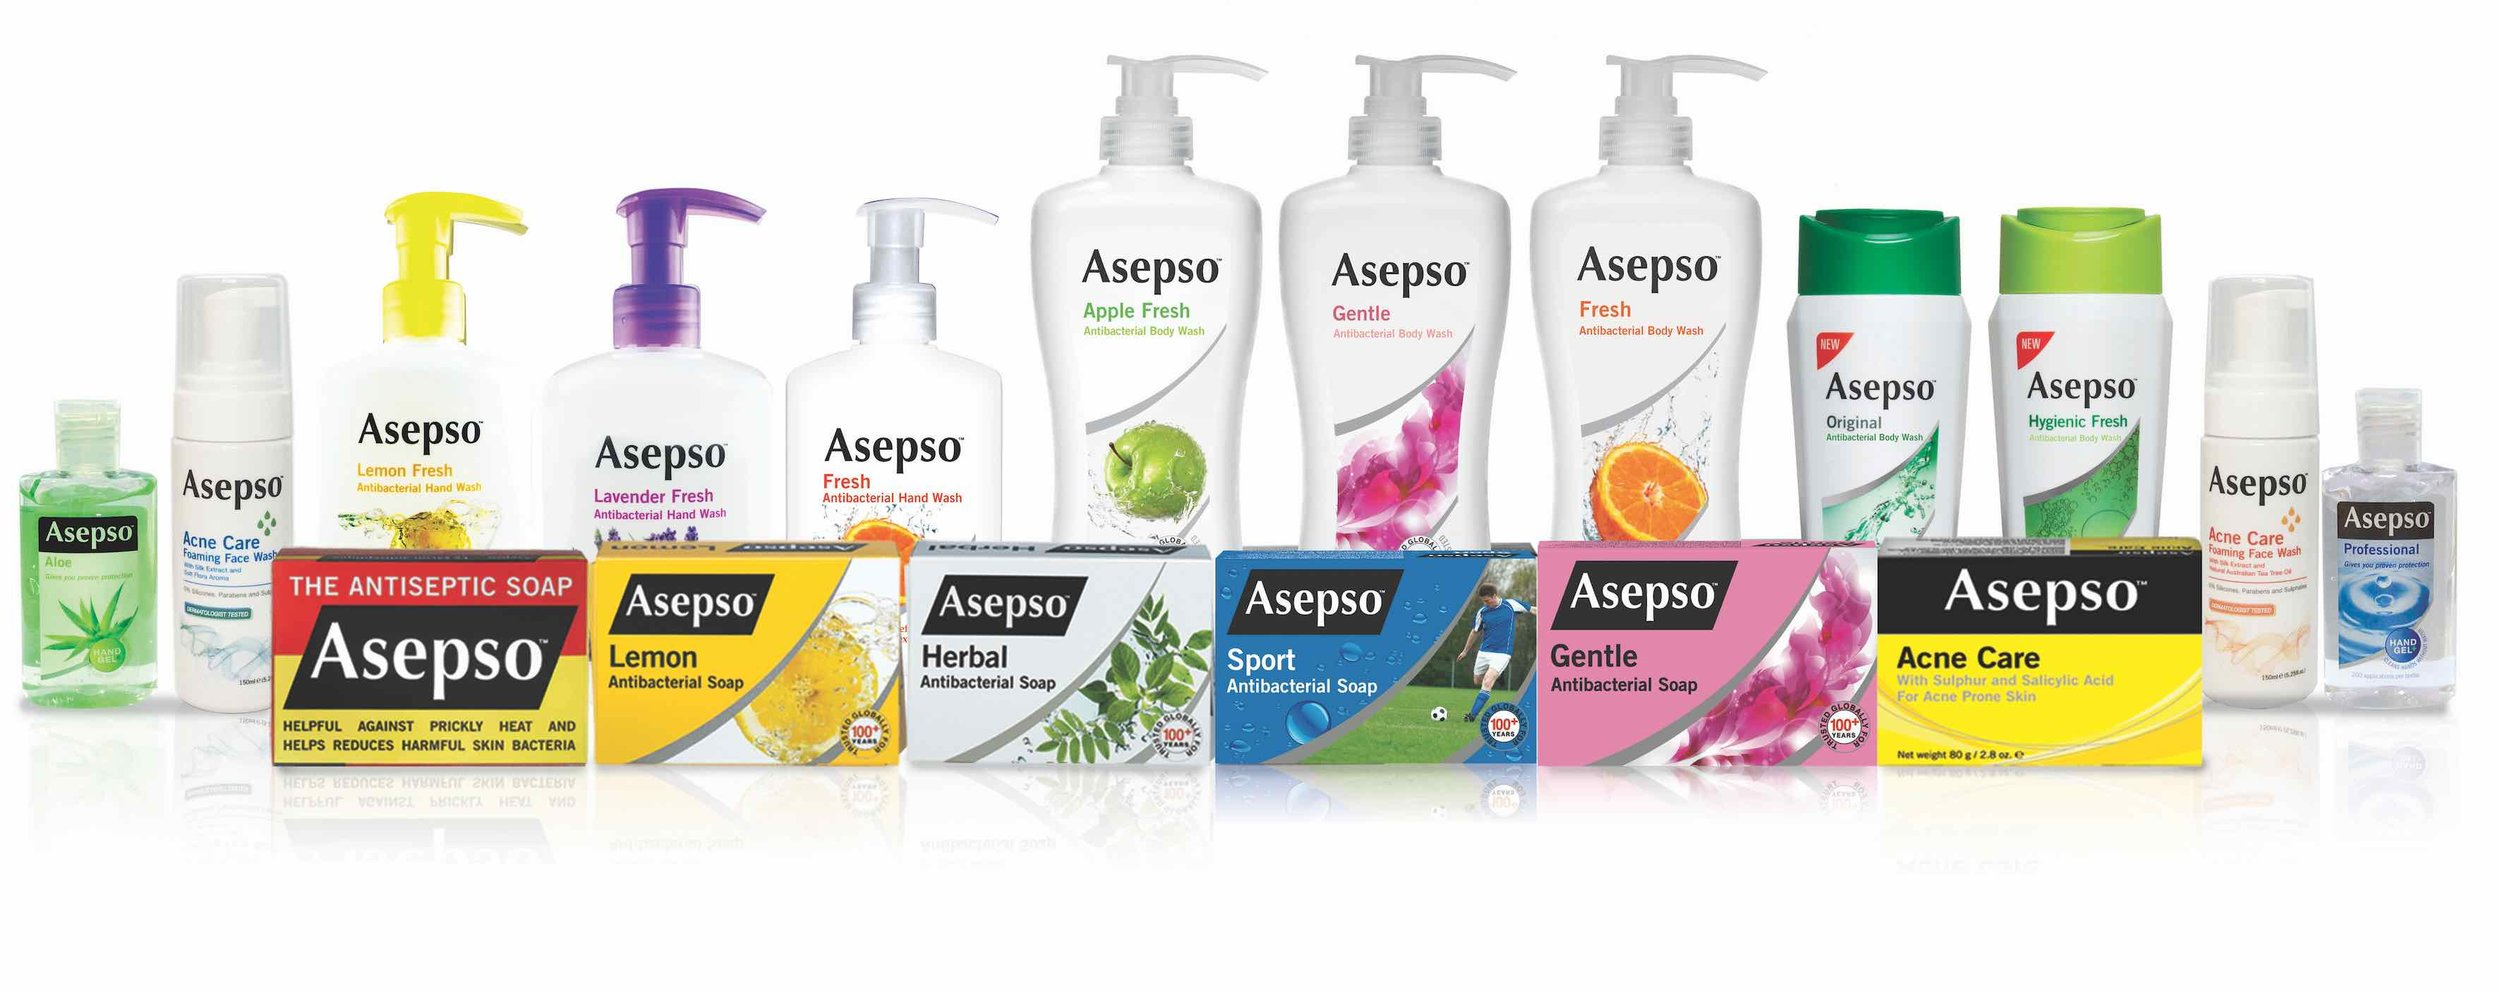 Full Export Range of ASEPSO products